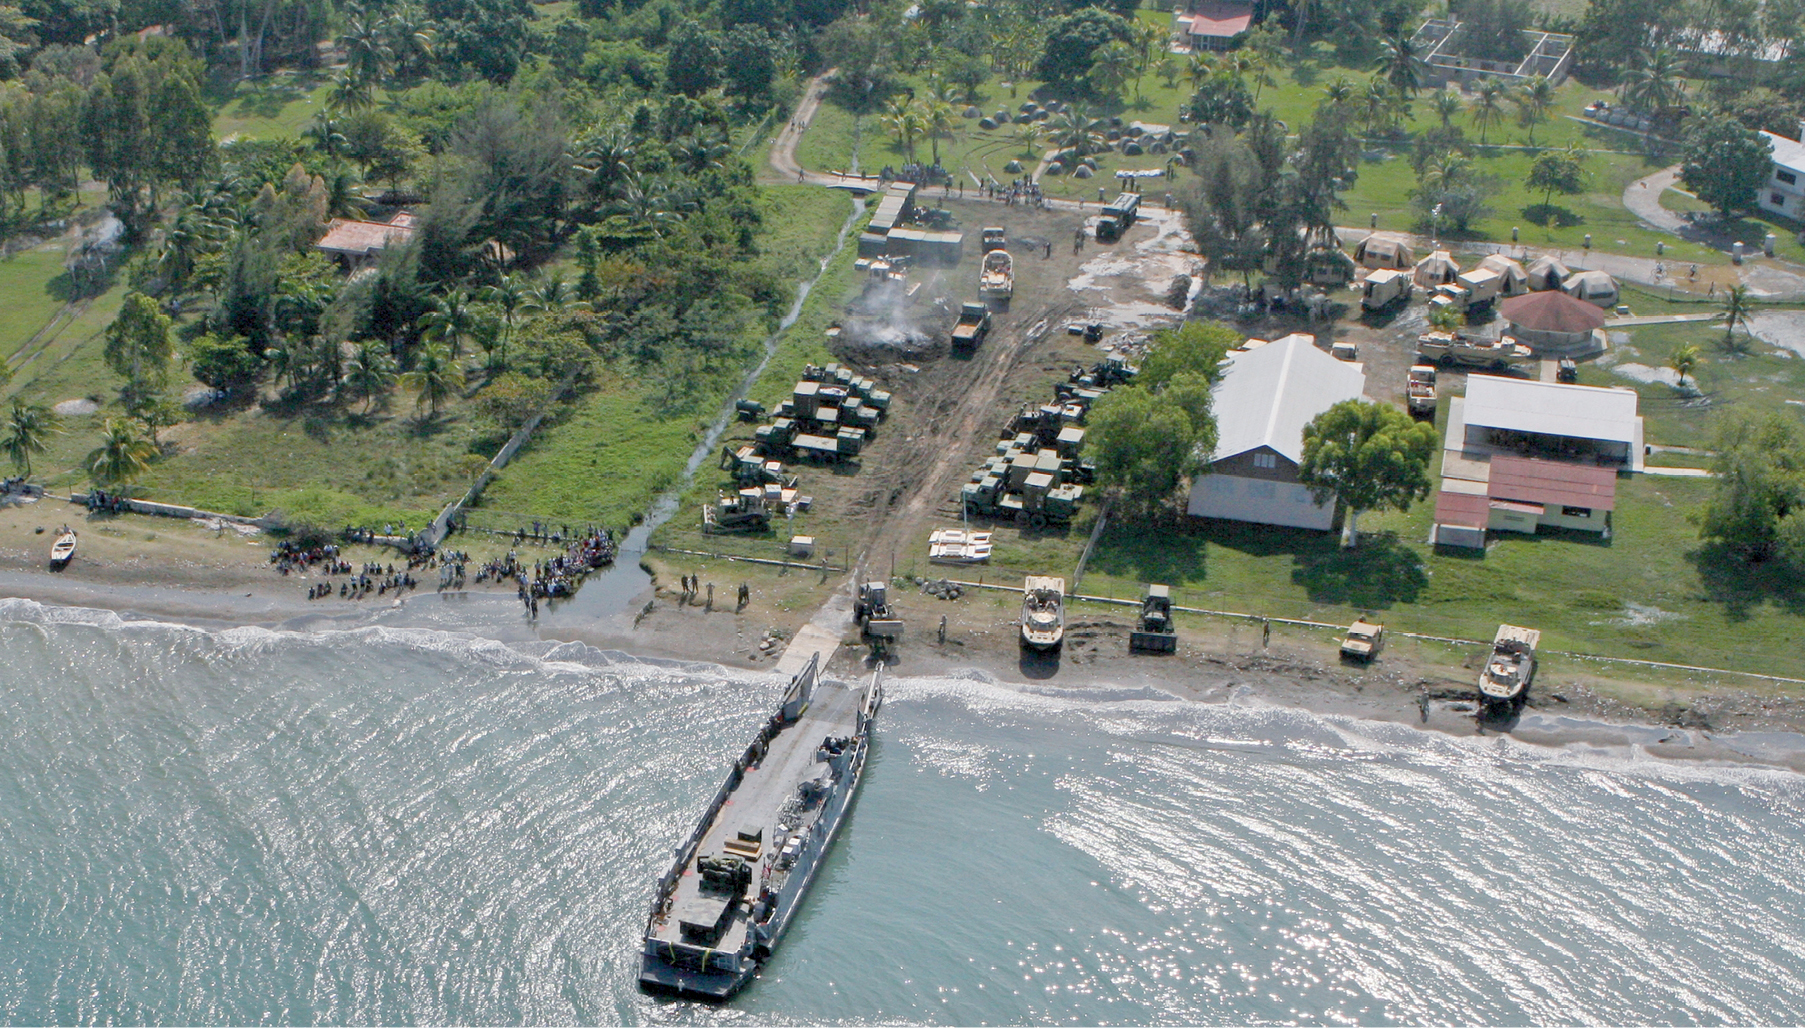 The U.S. Navy and Marines have established New Missions as their base camp for the Leogane area. This aerial photograph captured by the U.S. Navy shows our campus on the ocean at Bordmer, Leogane, Haiti.